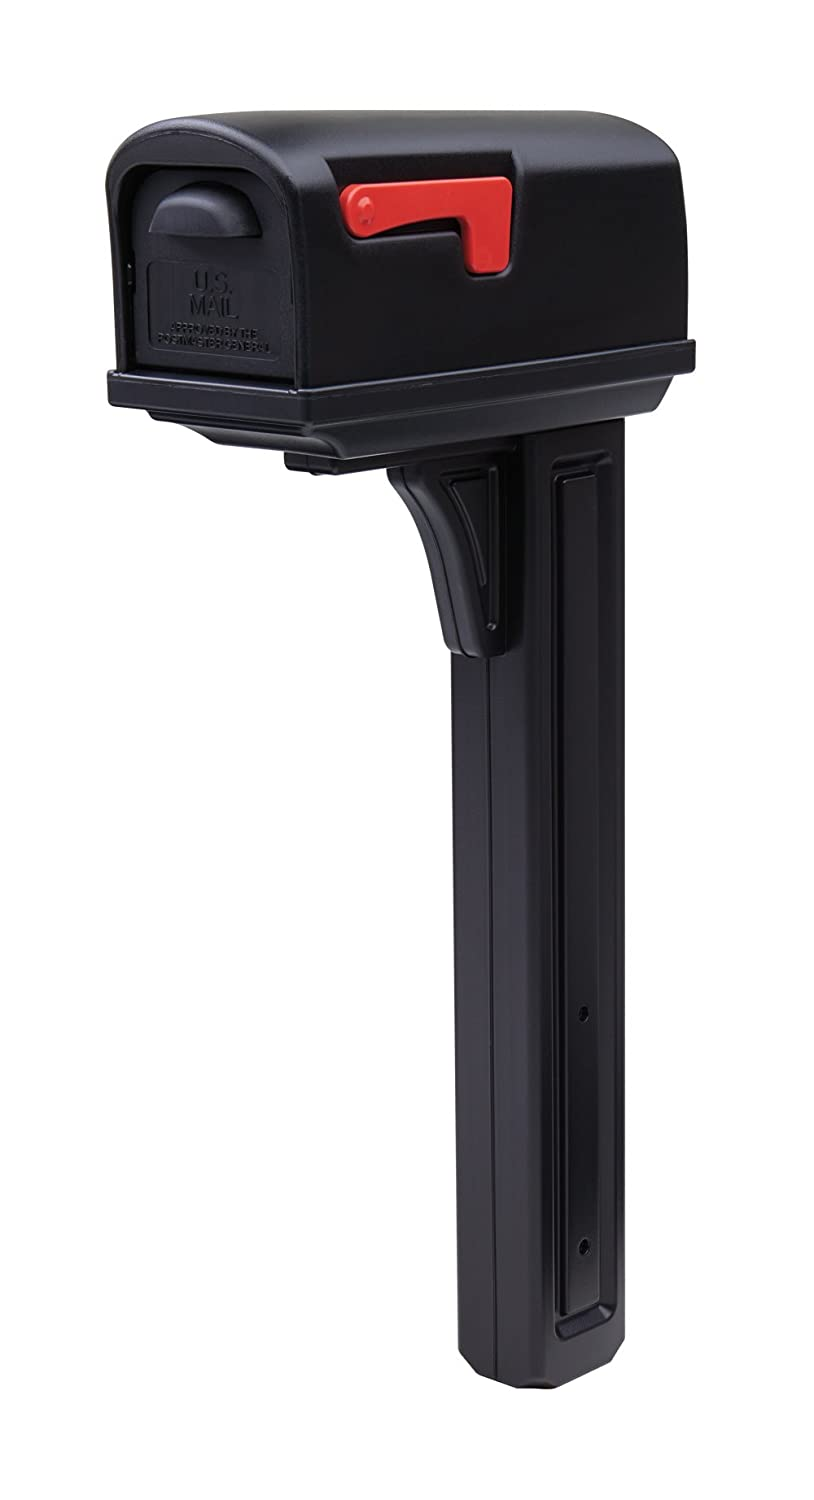 Gibraltar Mailboxes Classic Medium Capacity Double-Walled Plastic Mocha, All-In-One Mailbox & Post Combo Kit, GCL10000M Solar Group HH-20412953